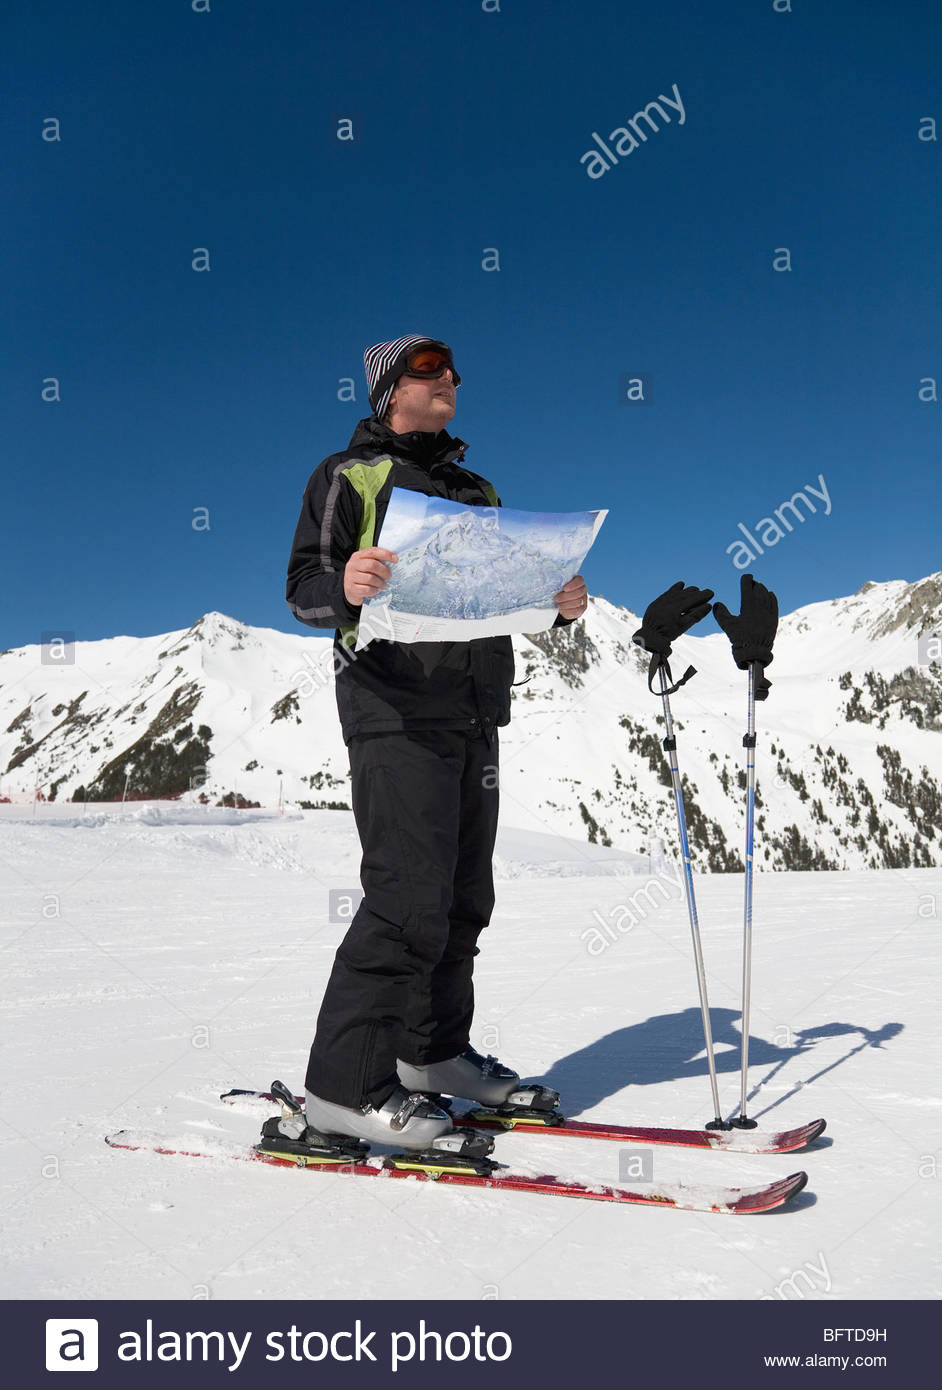 Man reading map on ski slope - Stock Image